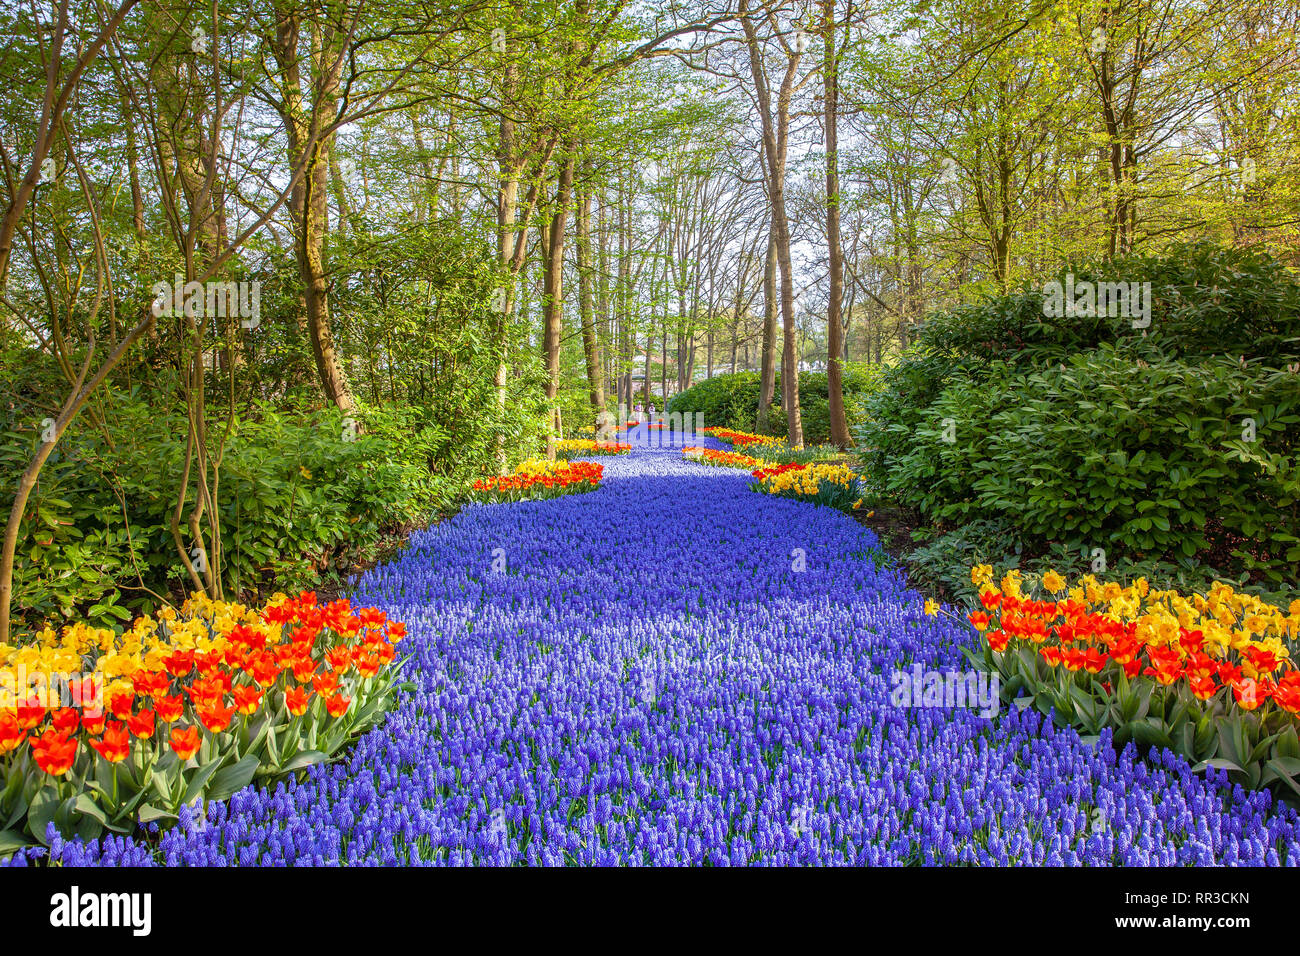 Keukenhof Famous Colorful Flowers Gardens Lisse Netherlands Stock